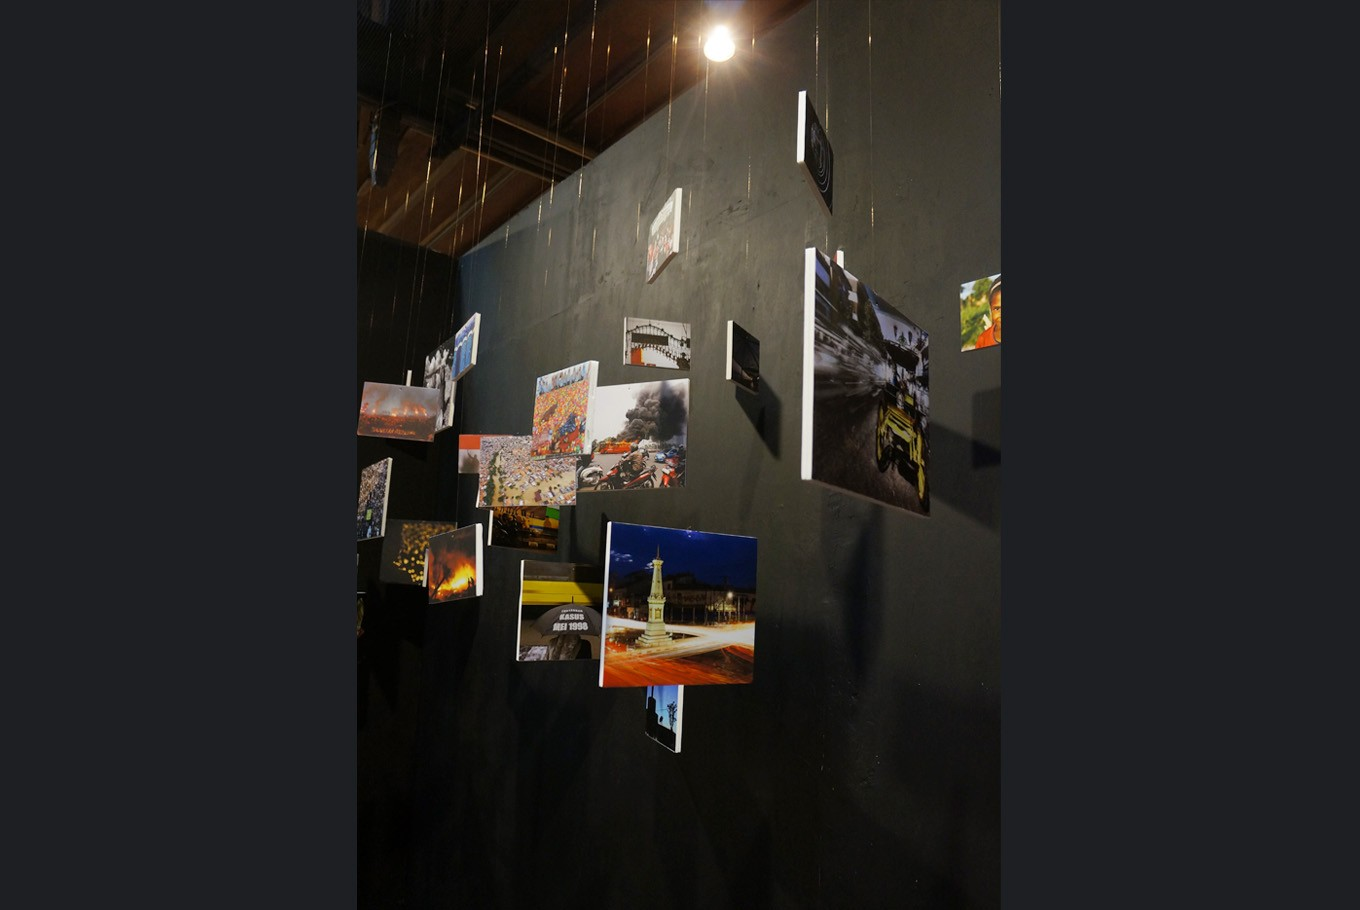 """An installation in the Unpublished exhibition. Among the works are images that show blood and violence, as well as works that festival head Wisnu Widiantoro called """"graphically interesting, but unattractive as news"""". (JP/Masajeng Rahmiasri)"""